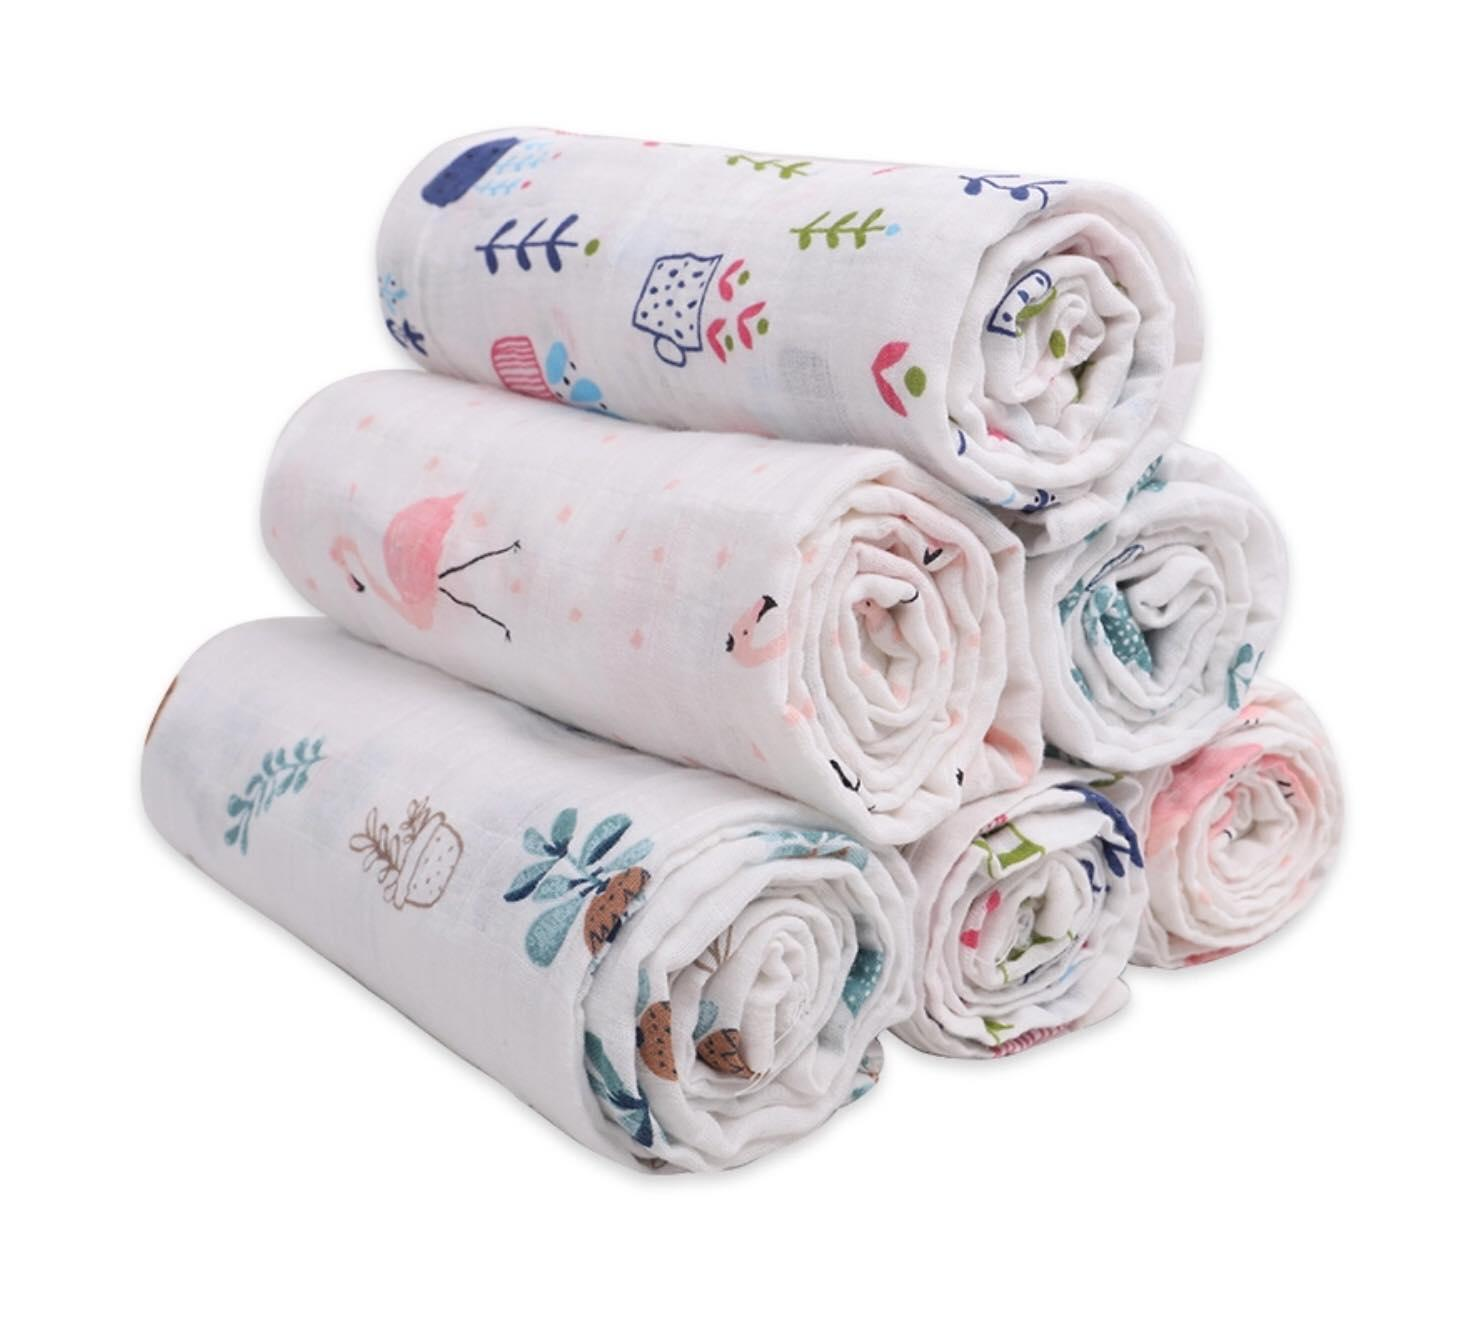 Nursery Blankets For Sale Baby Blankets Online Brands Prices